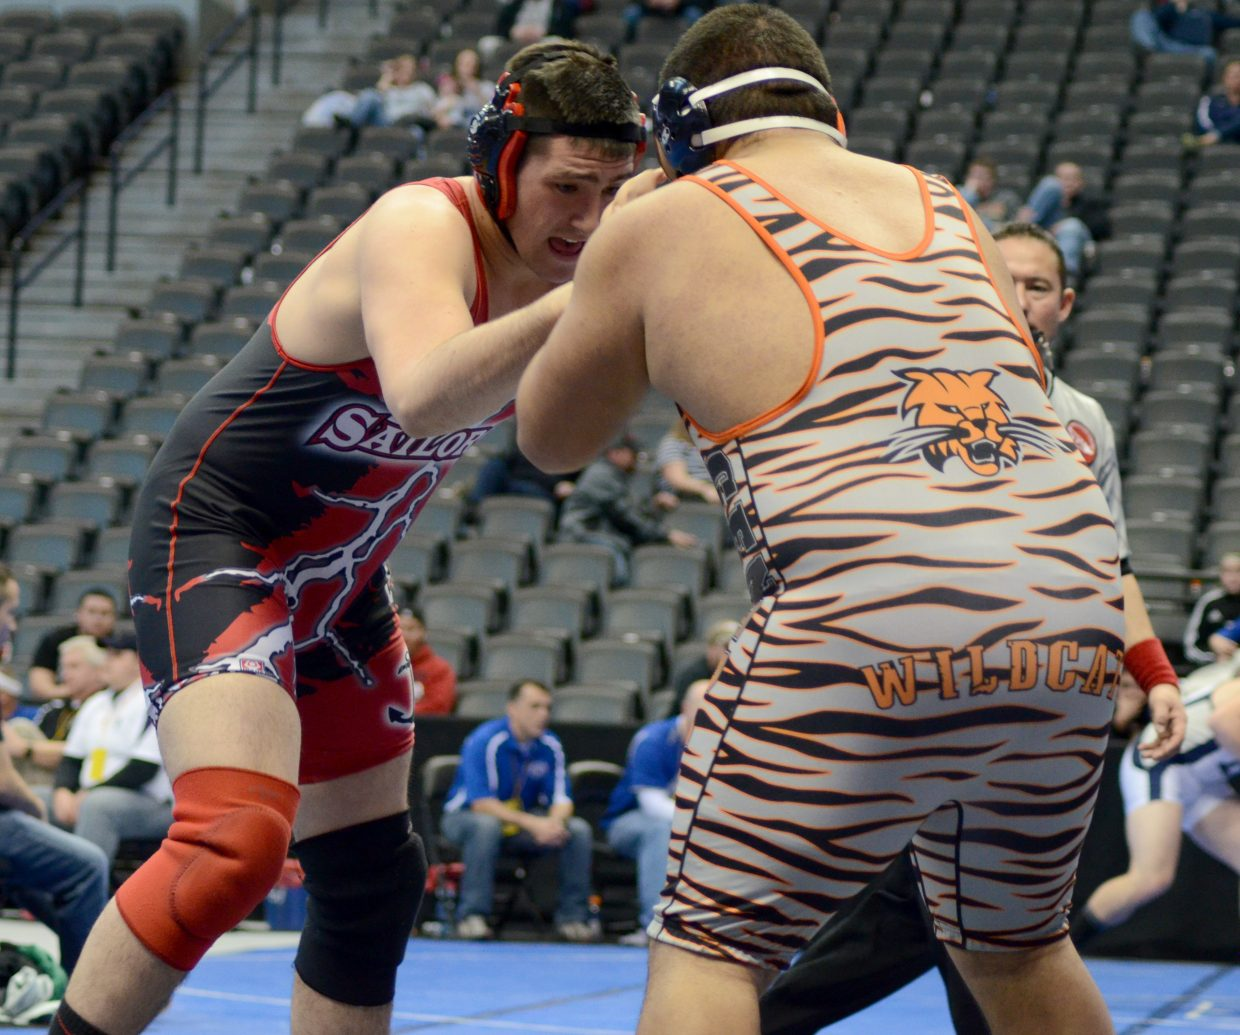 Steamboat's Cole Sittig lost his consolation bracket match and was knocked out of the state tournament after being pinned Friday.